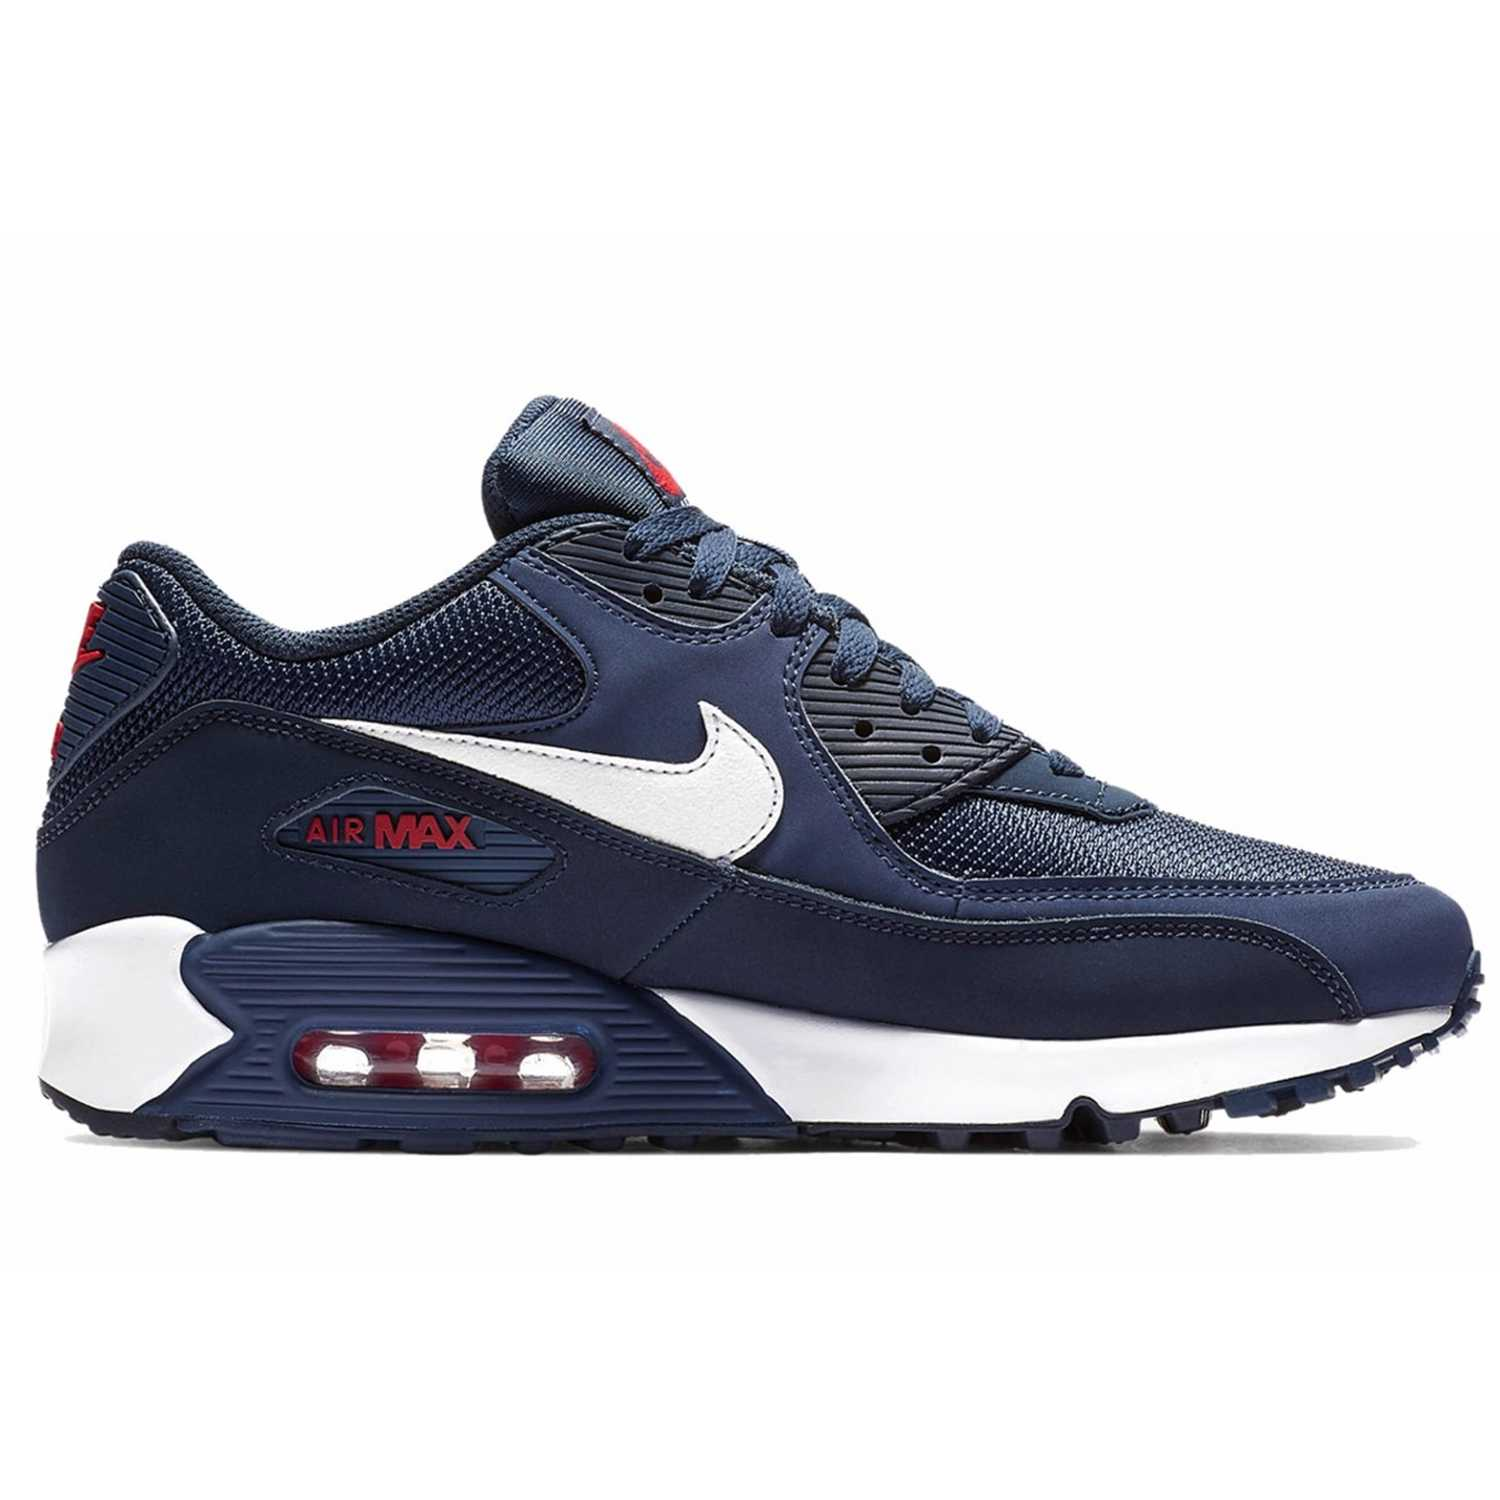 purchase cheap 3c74e 1ca94 Zapatilla de Hombre Nike Navy / Blanco nike air max 90 essential ...